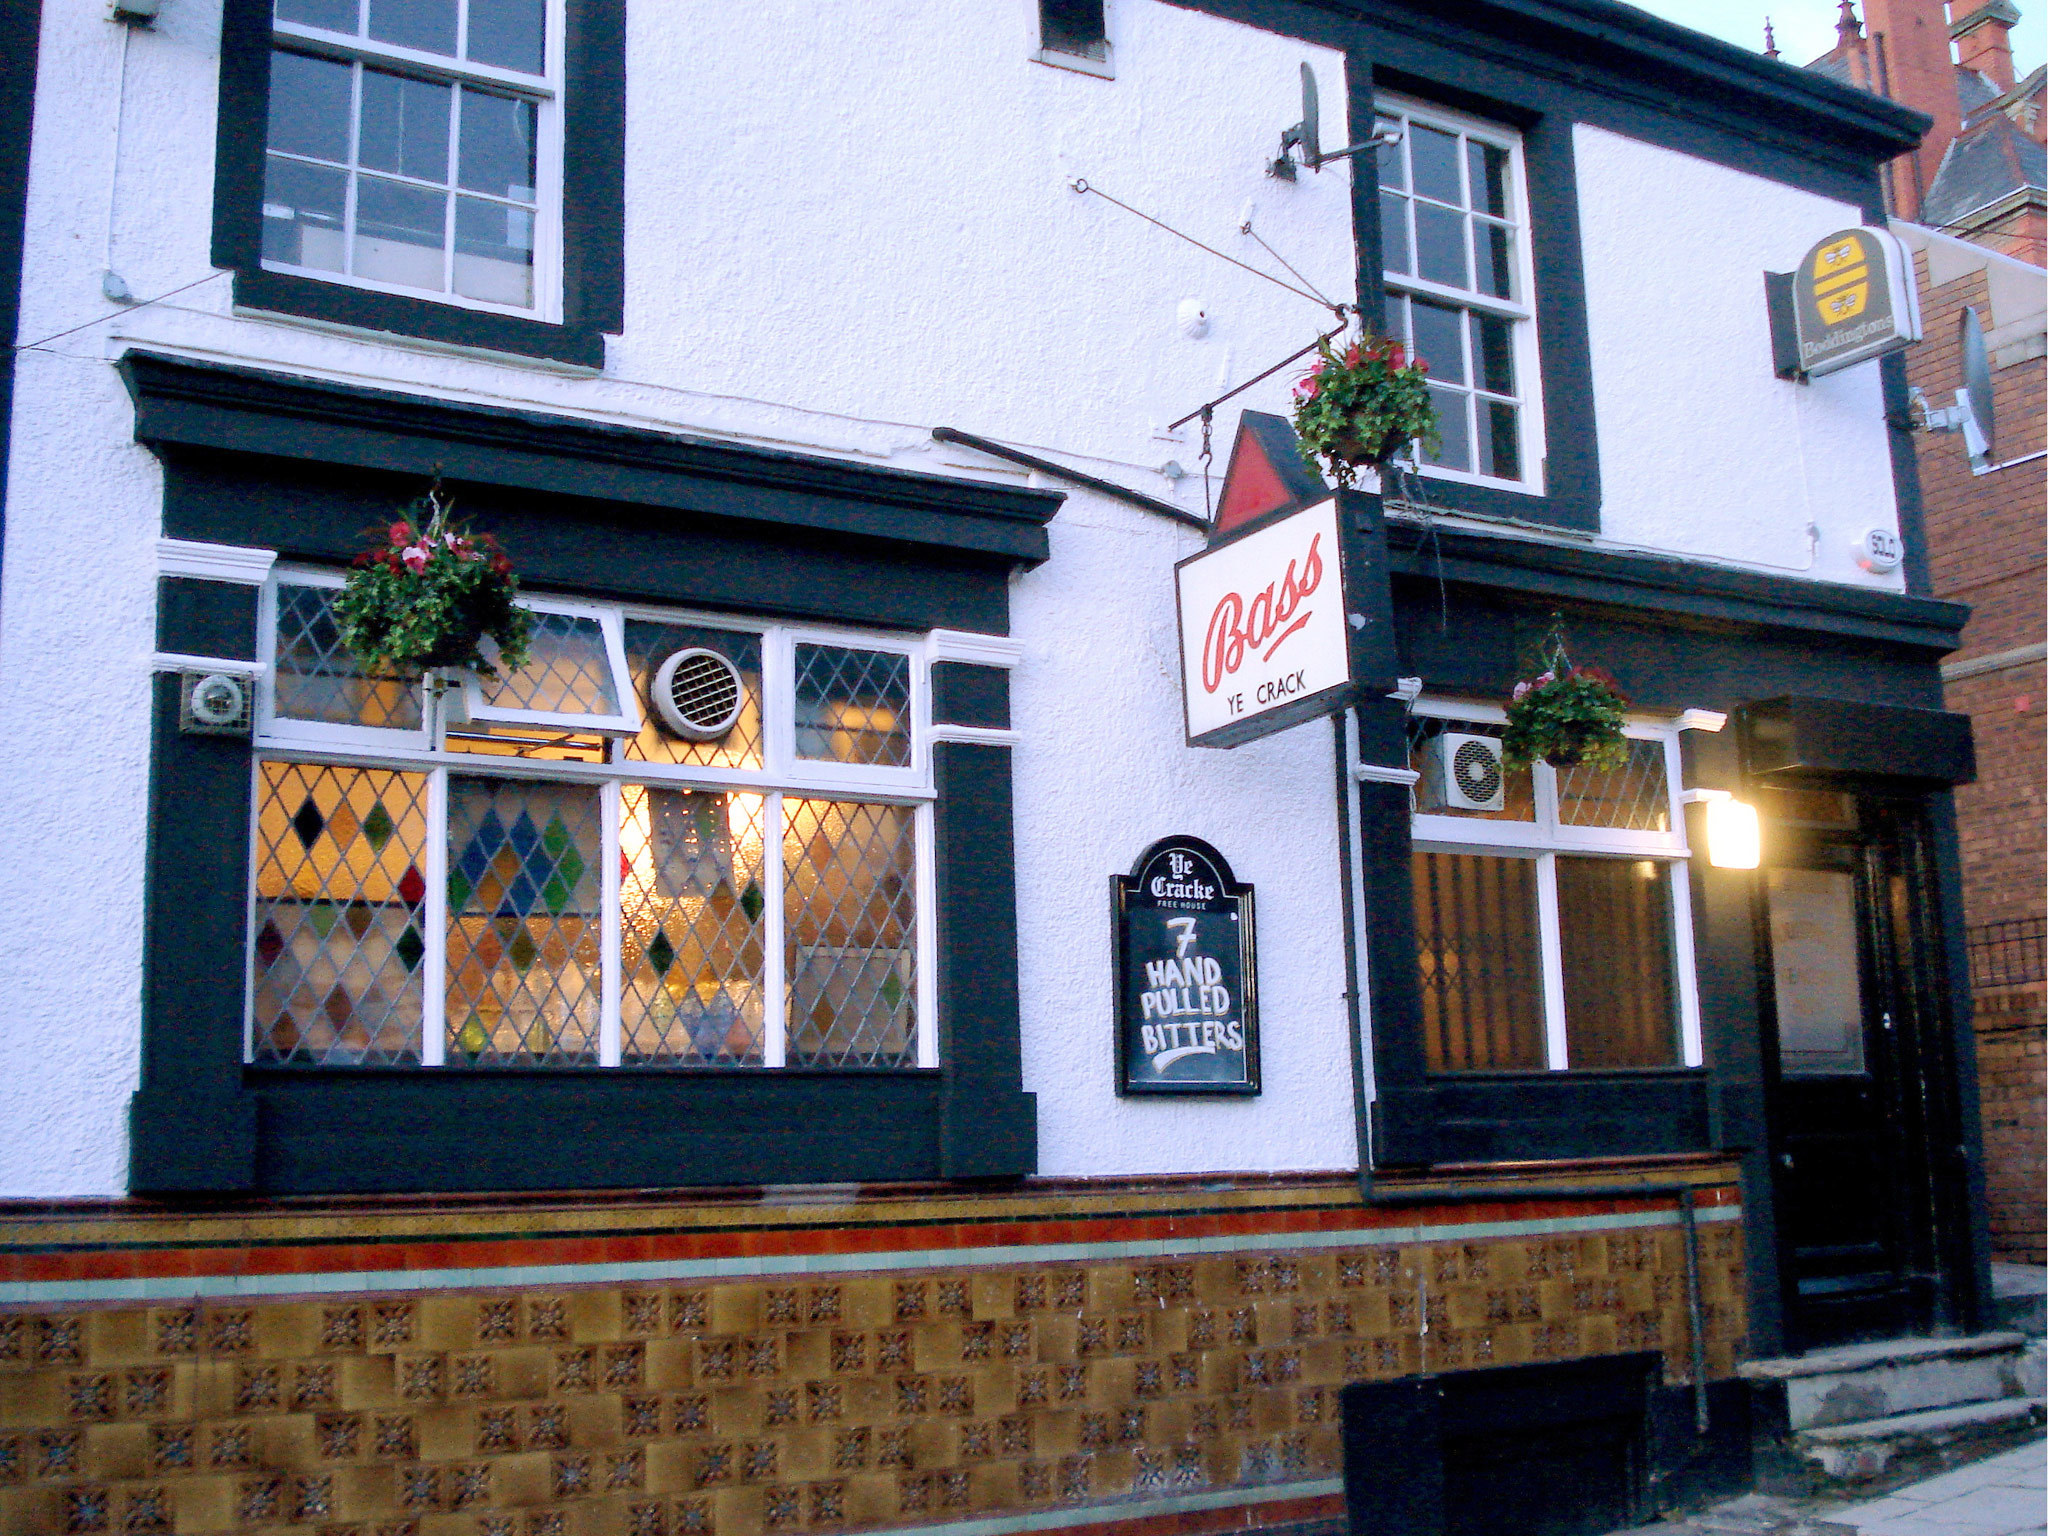 The exterior of Ye Cracke in Liverpool